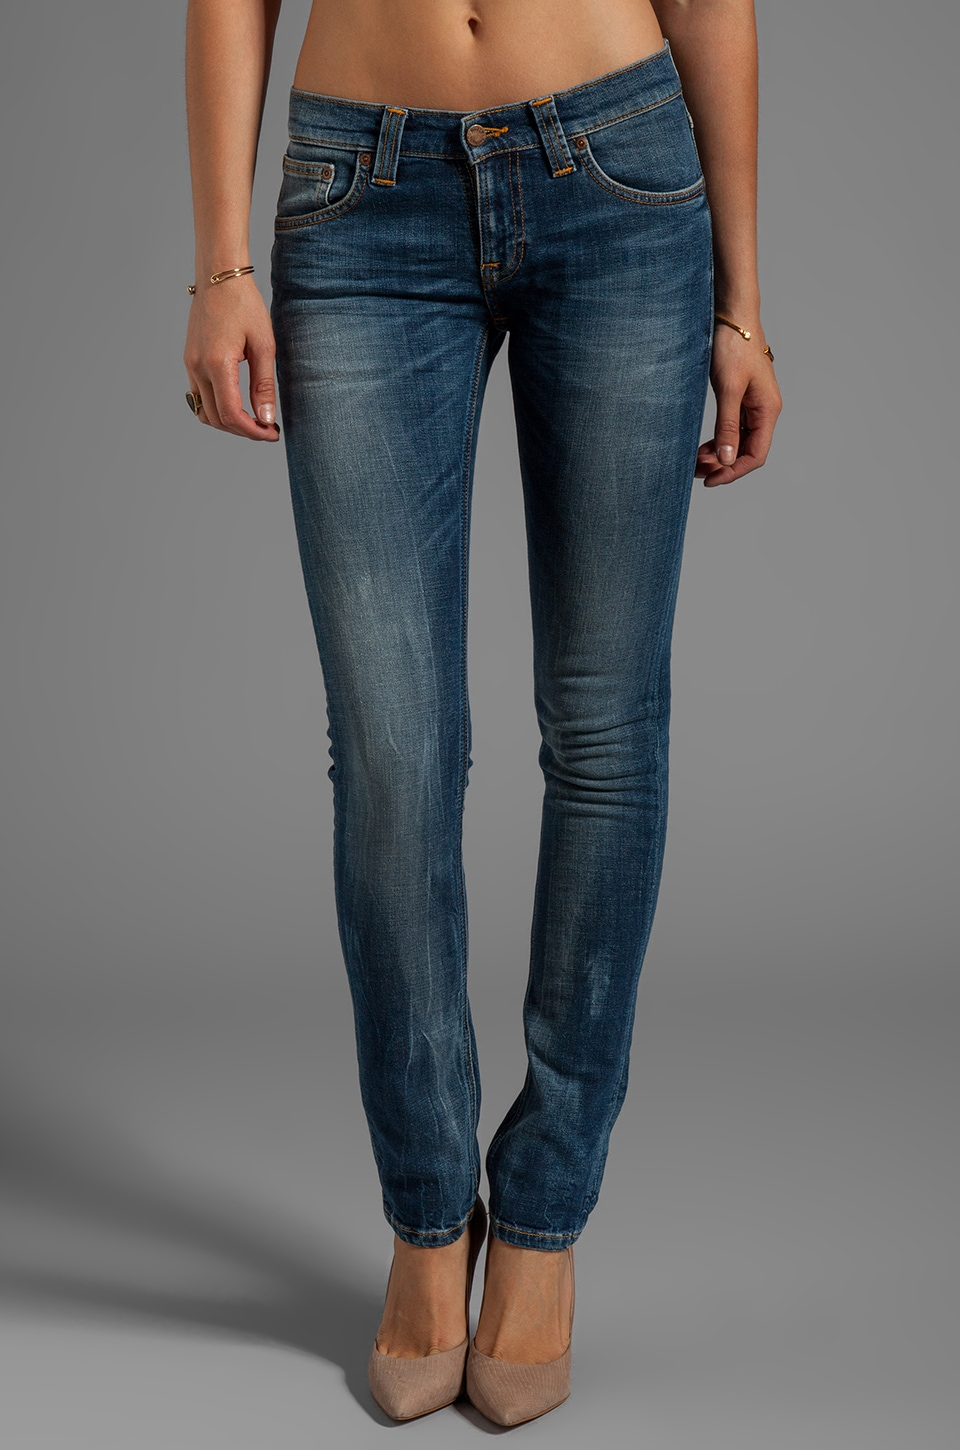 Nudie Jeans Tight Long John in Org Grey Blues